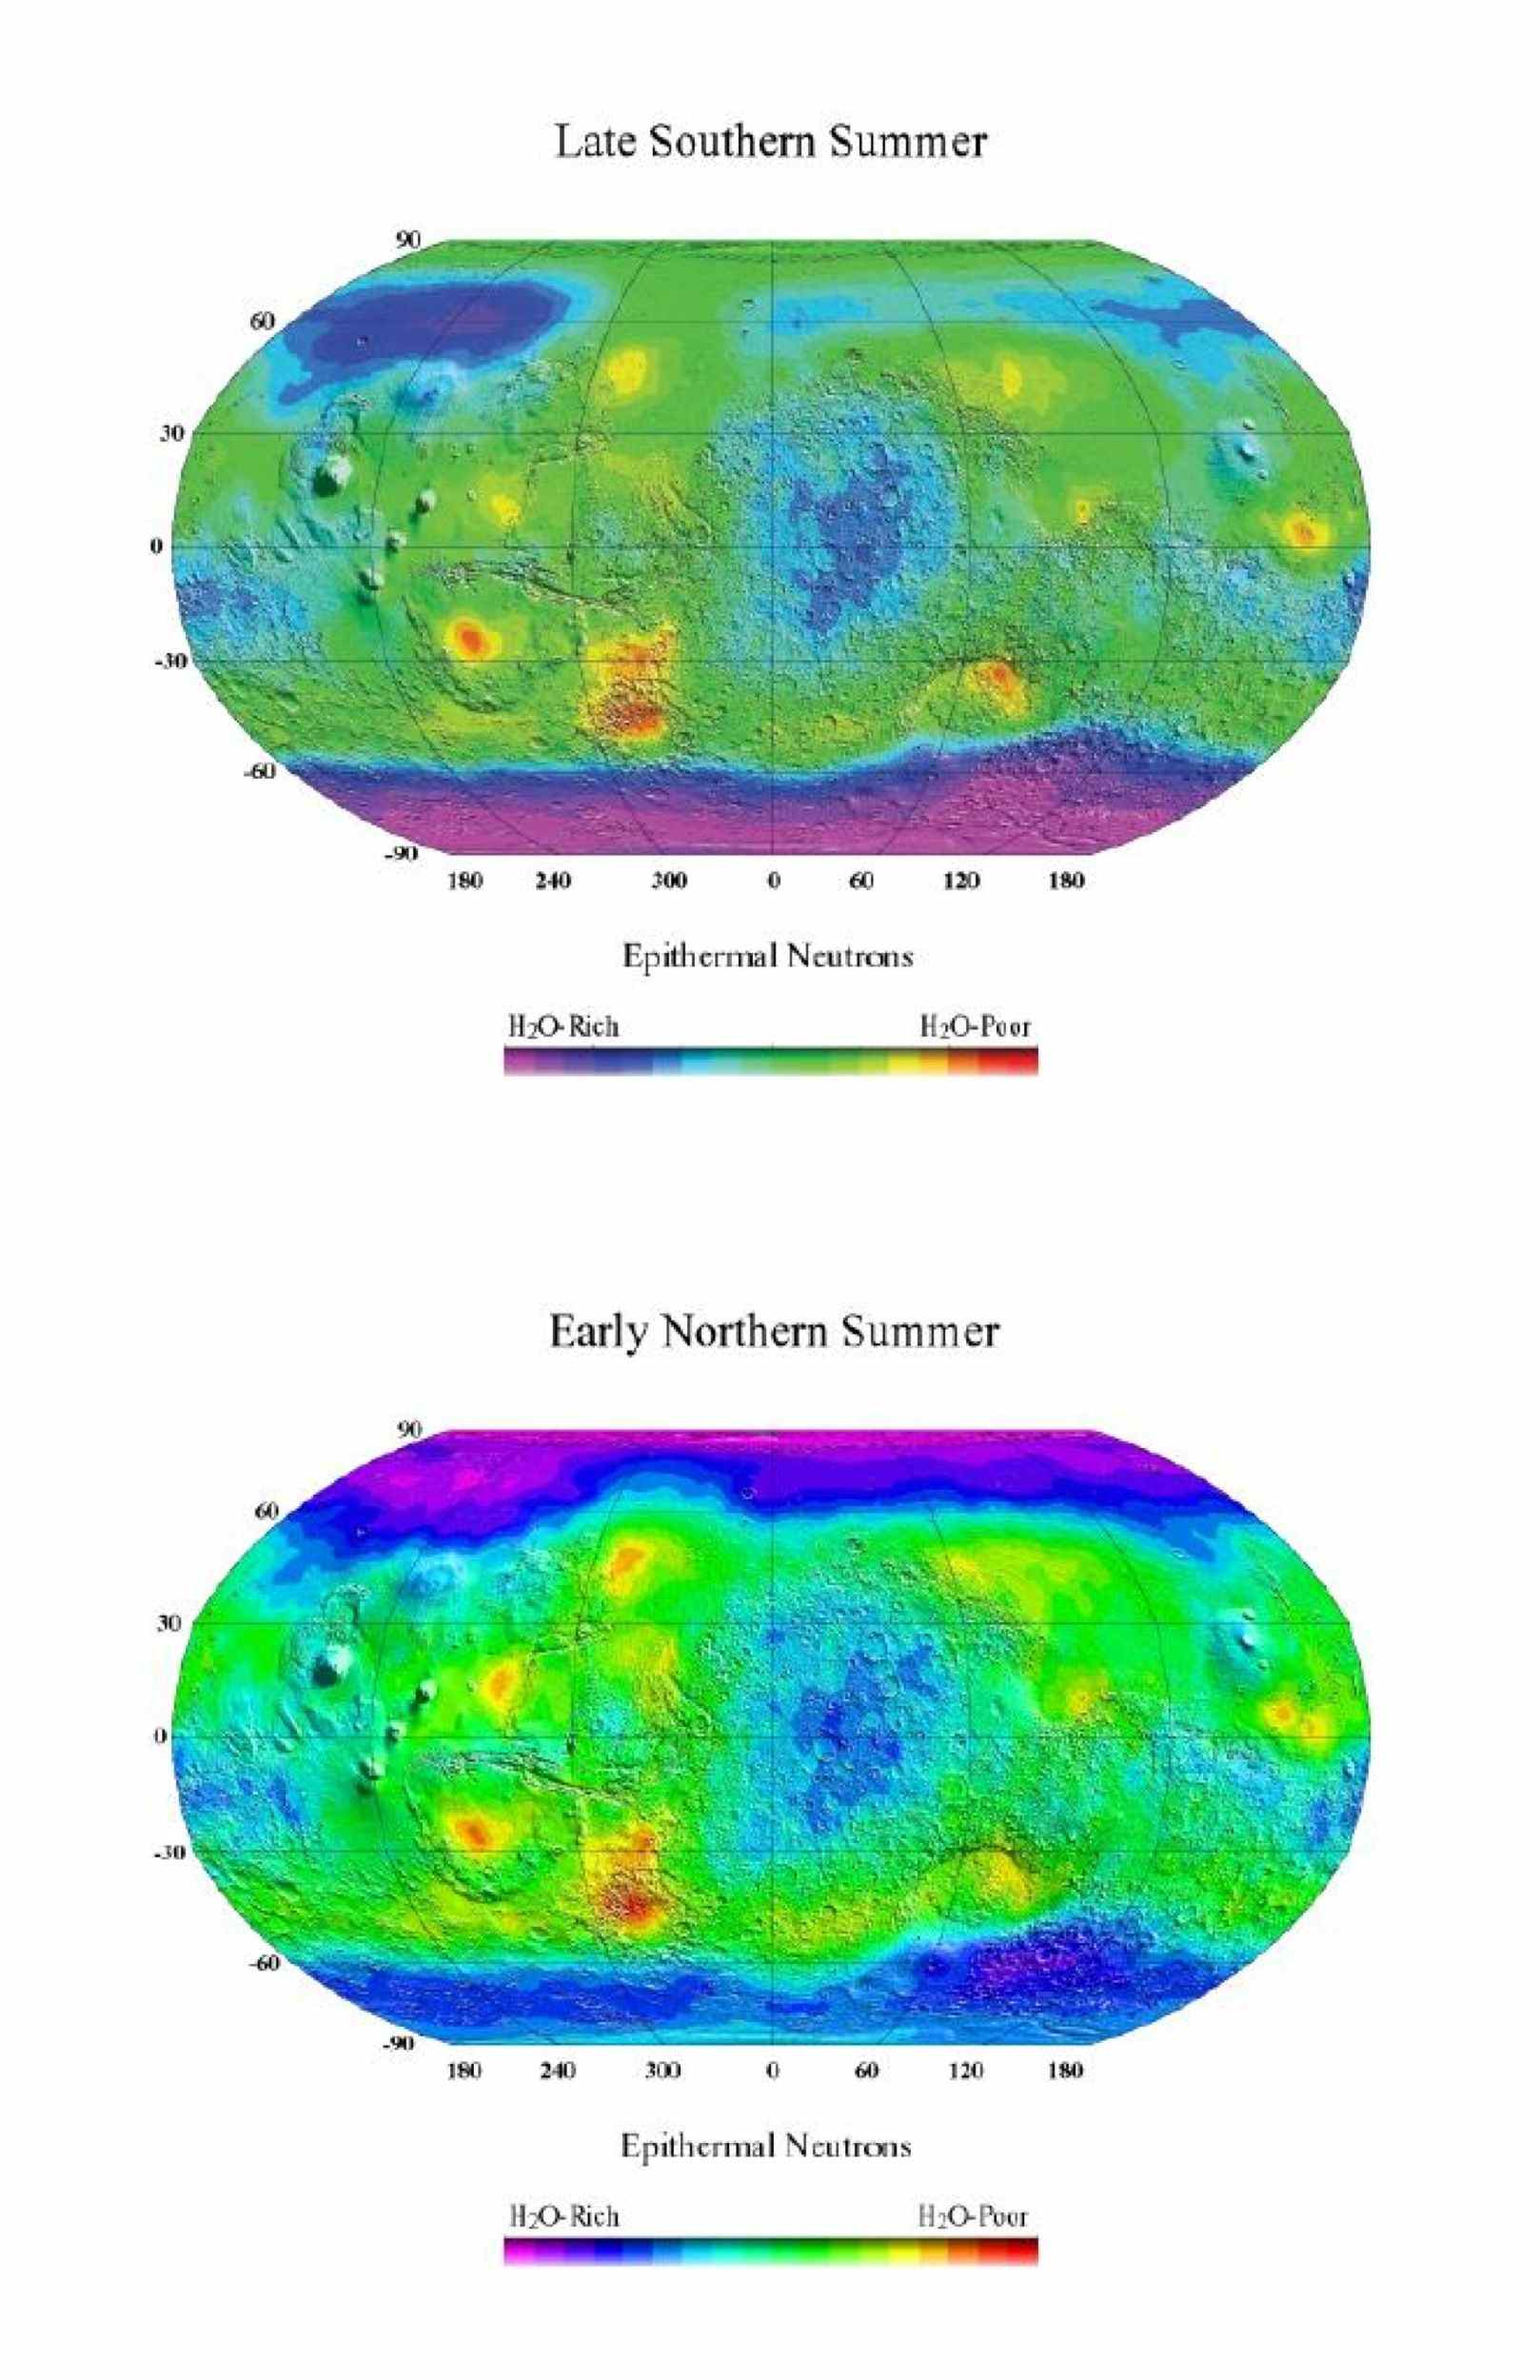 These two views of Mars were made with data taken by the neutron spectrometer component of NASA's Mars Odyssey spacecraft and show epithermal neutron flux, which is sensitive to the amount of hydrogen present.